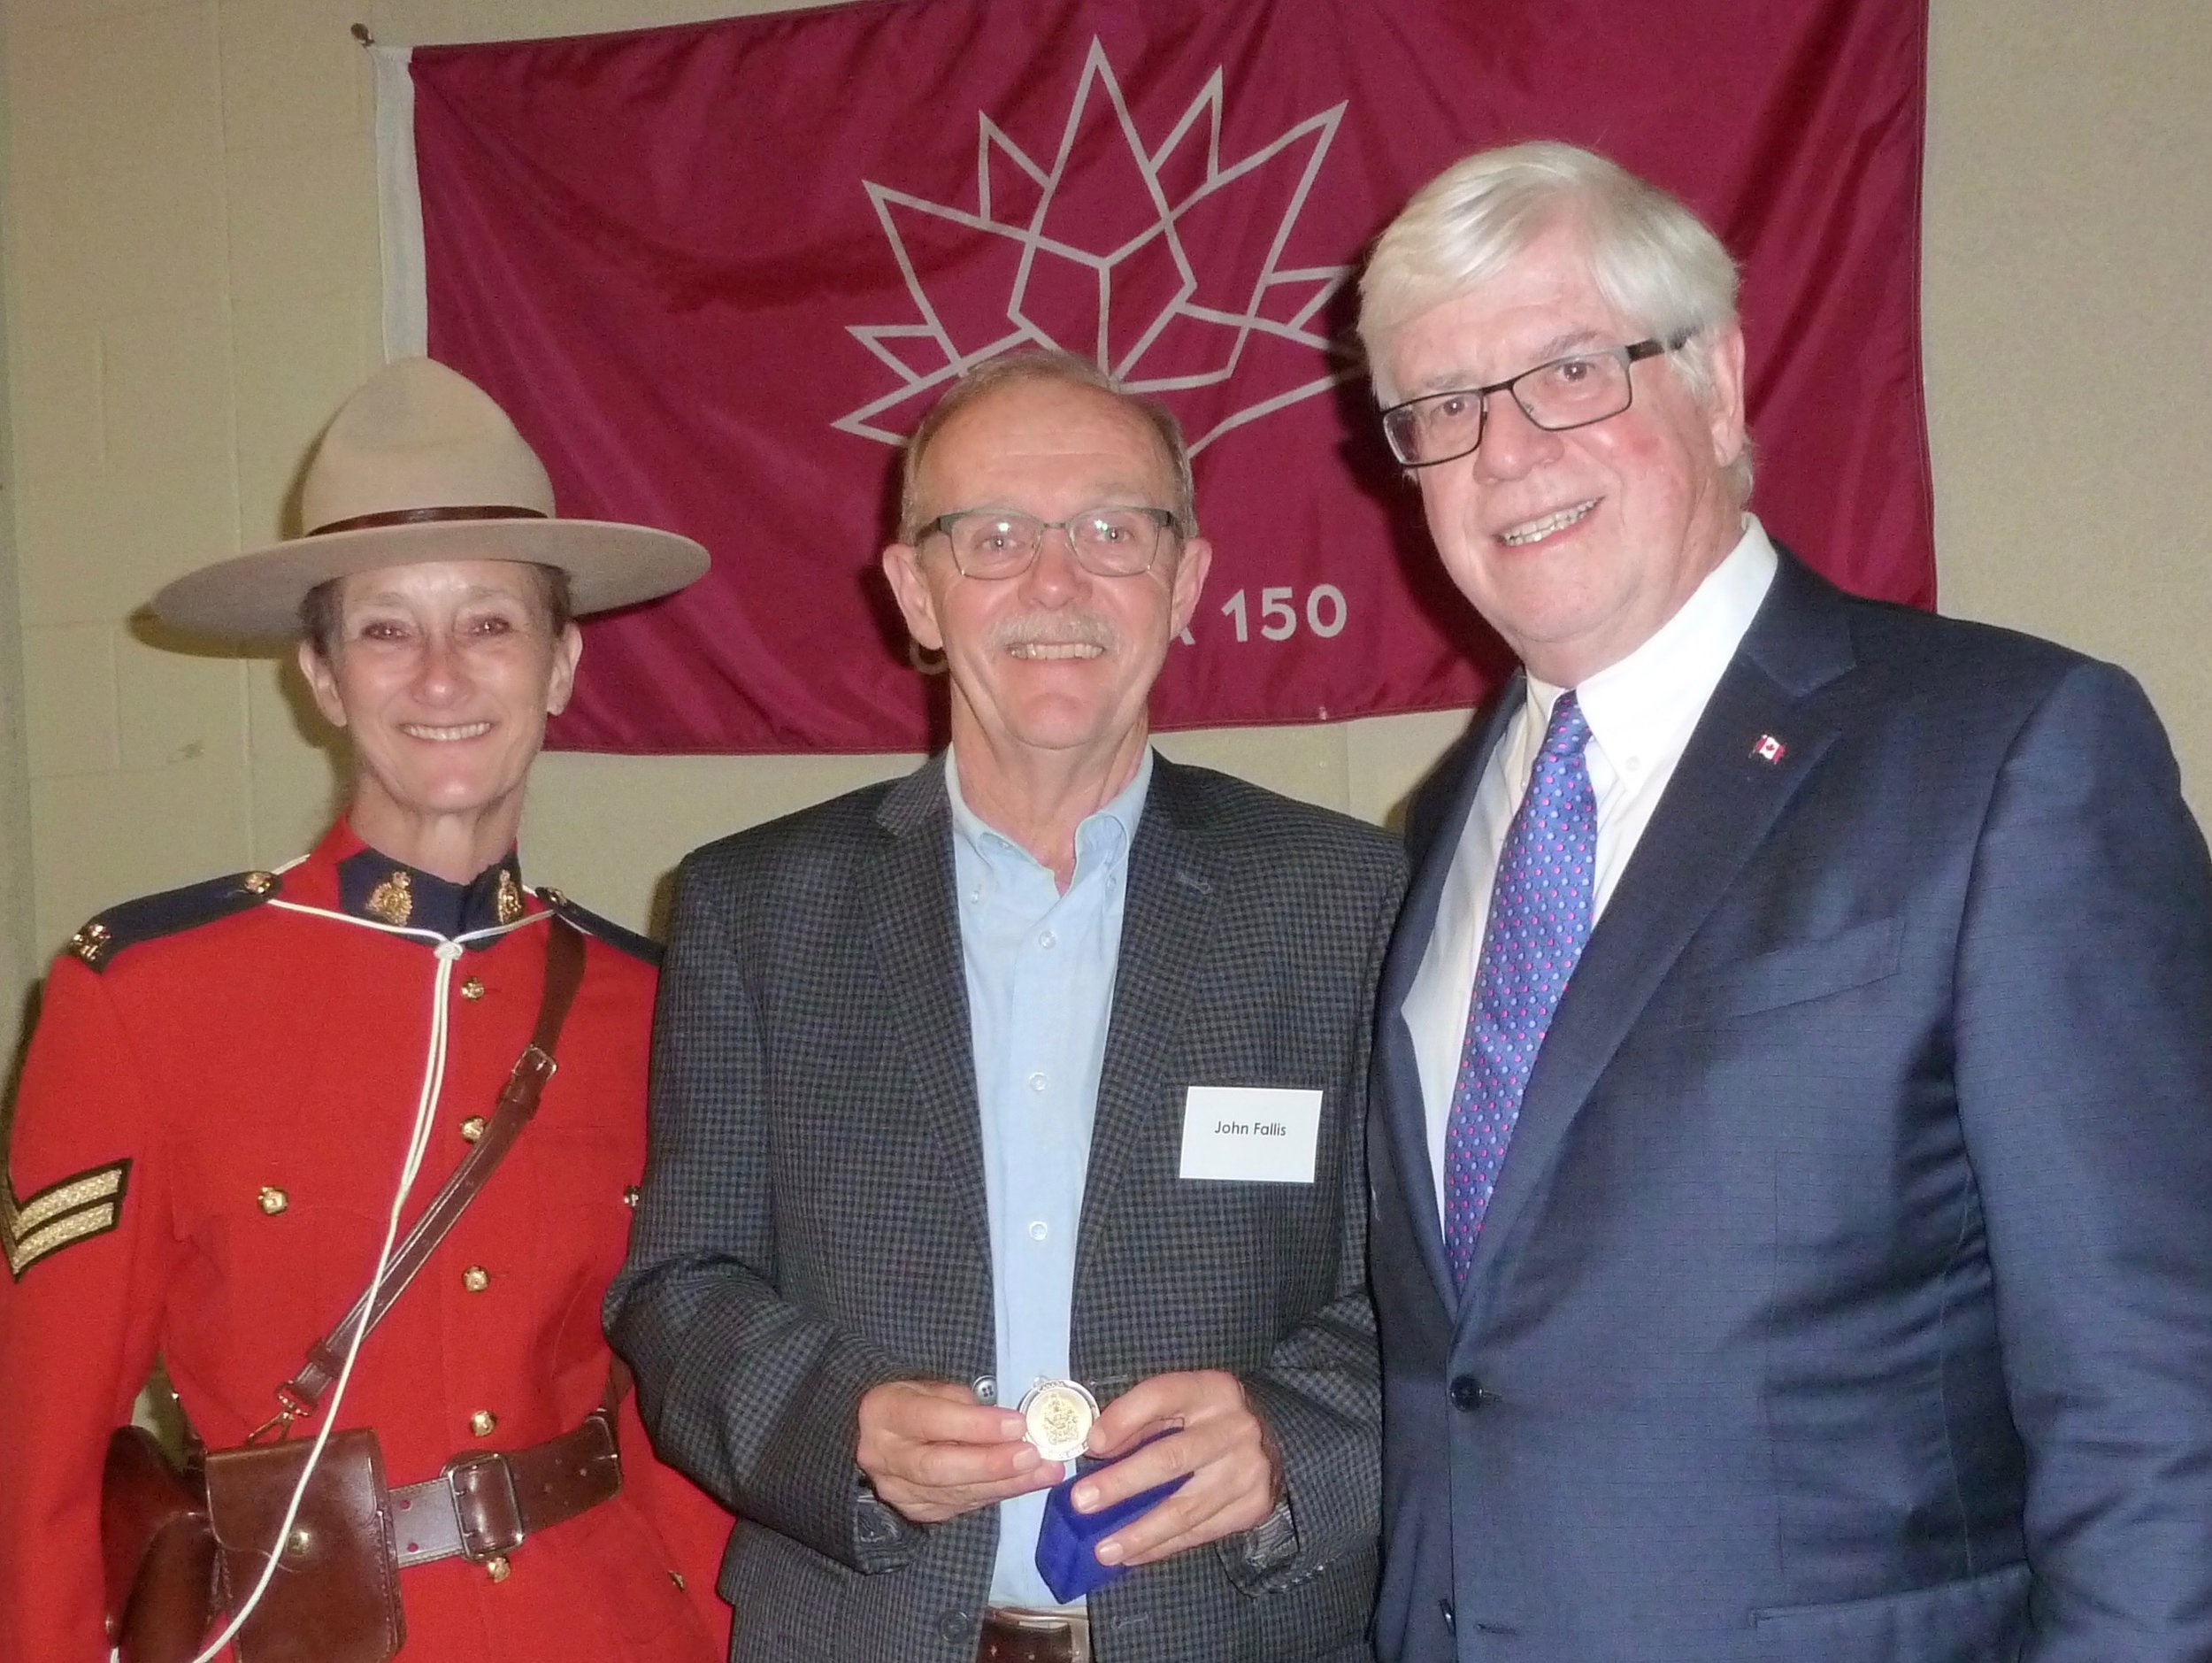 From Left: RCMP Officer Brenda Whitteron, John Fallis, David Tilson, MP